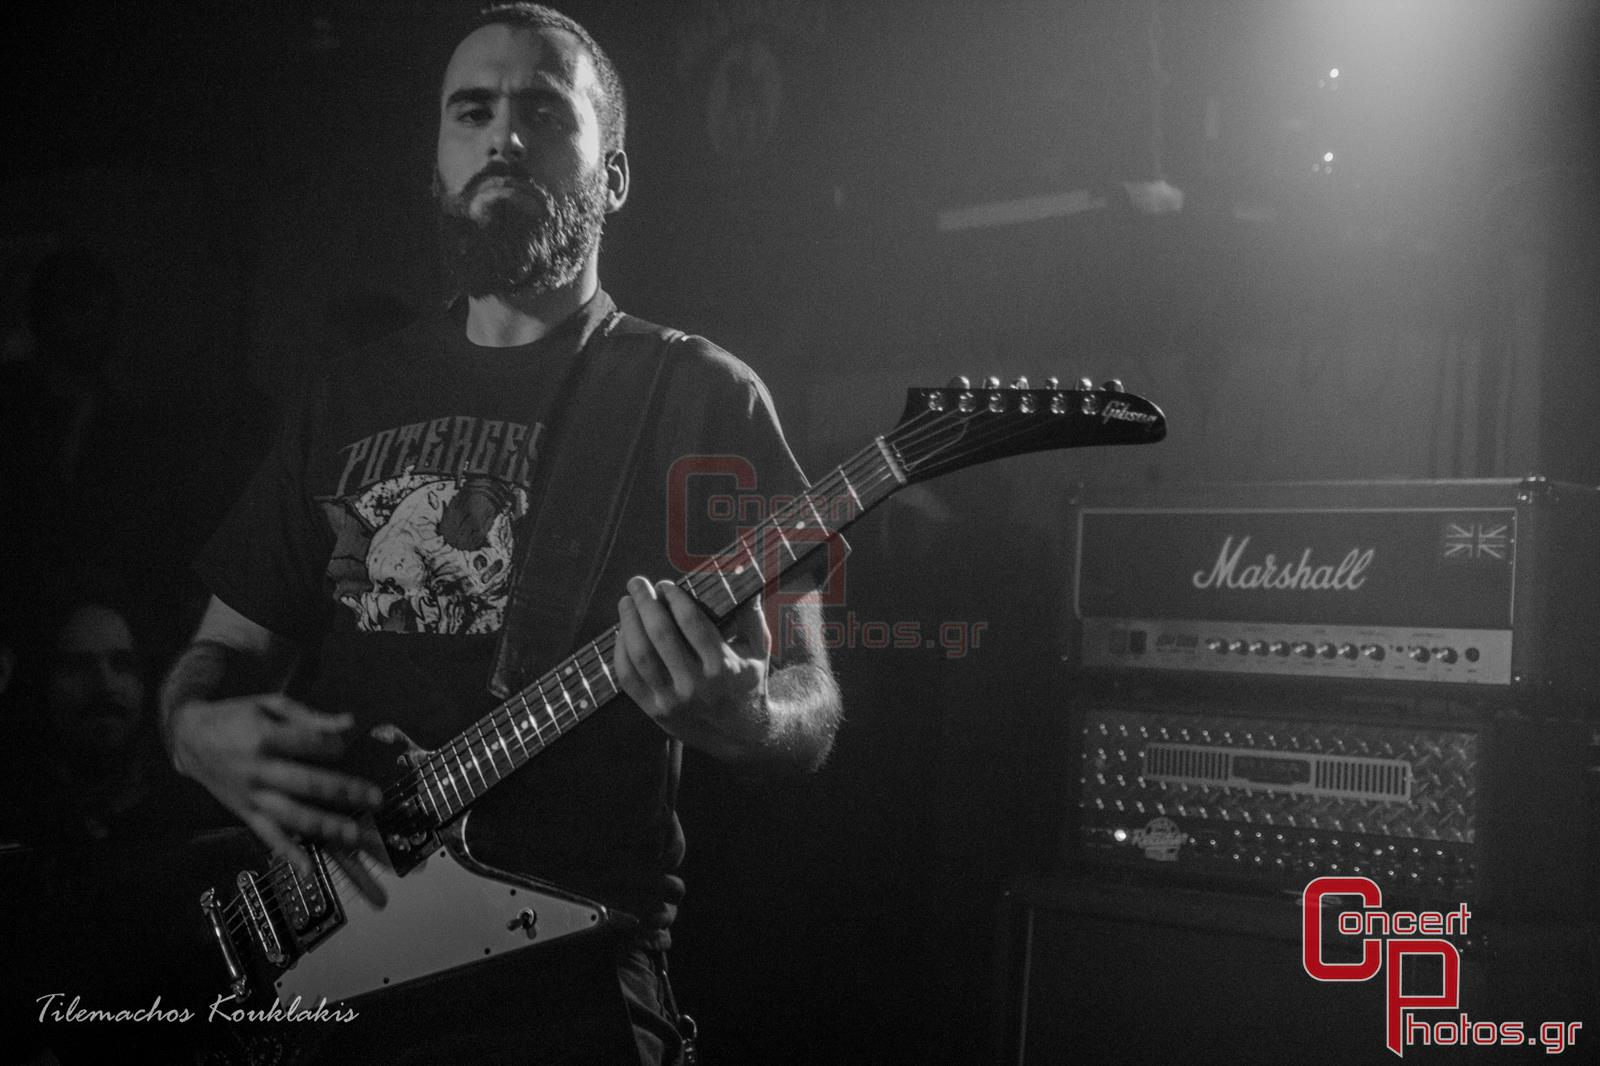 Nightstalker-Nightstalker AN Club photographer:  - concertphotos_-3